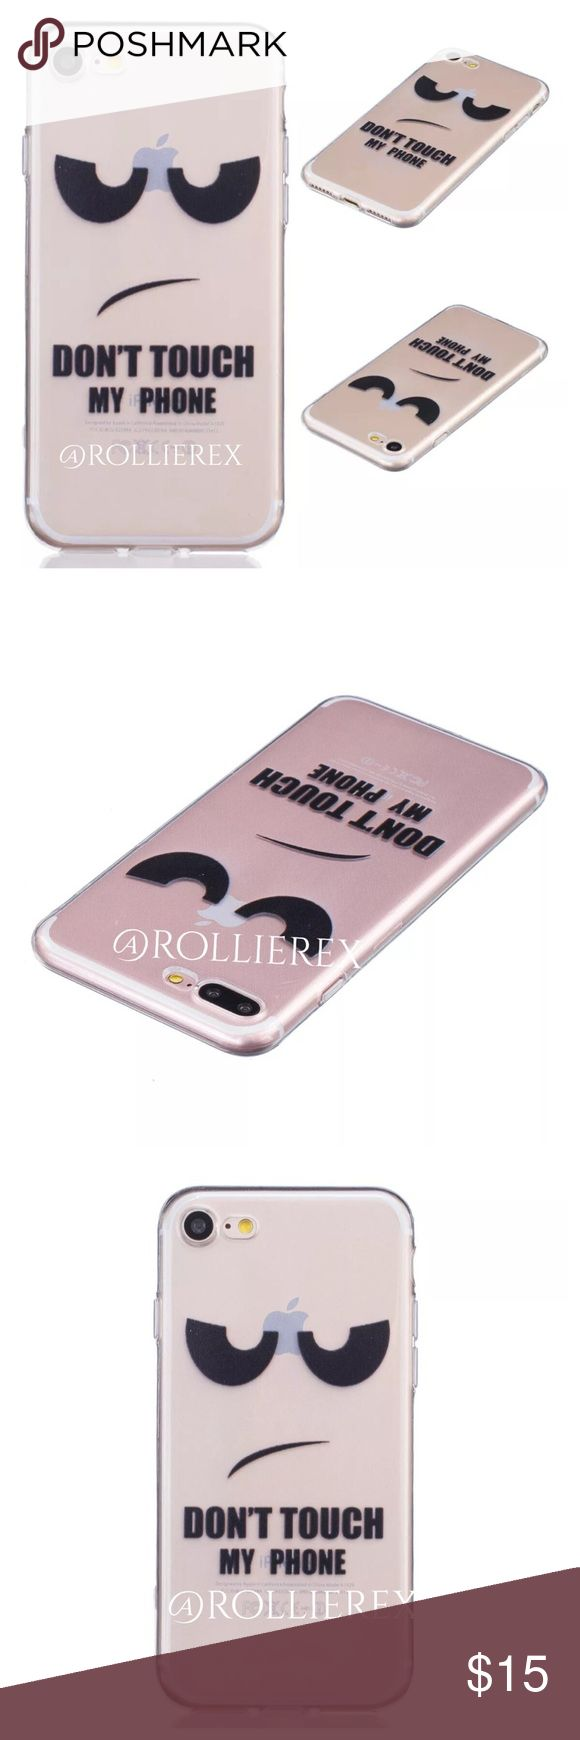 Don't Touch My Phone! Case  Soft Silicone with design on back   Protect your phone from damage and scratches   Humorous slogan  ❌ No Trades Accessories Phone Cases